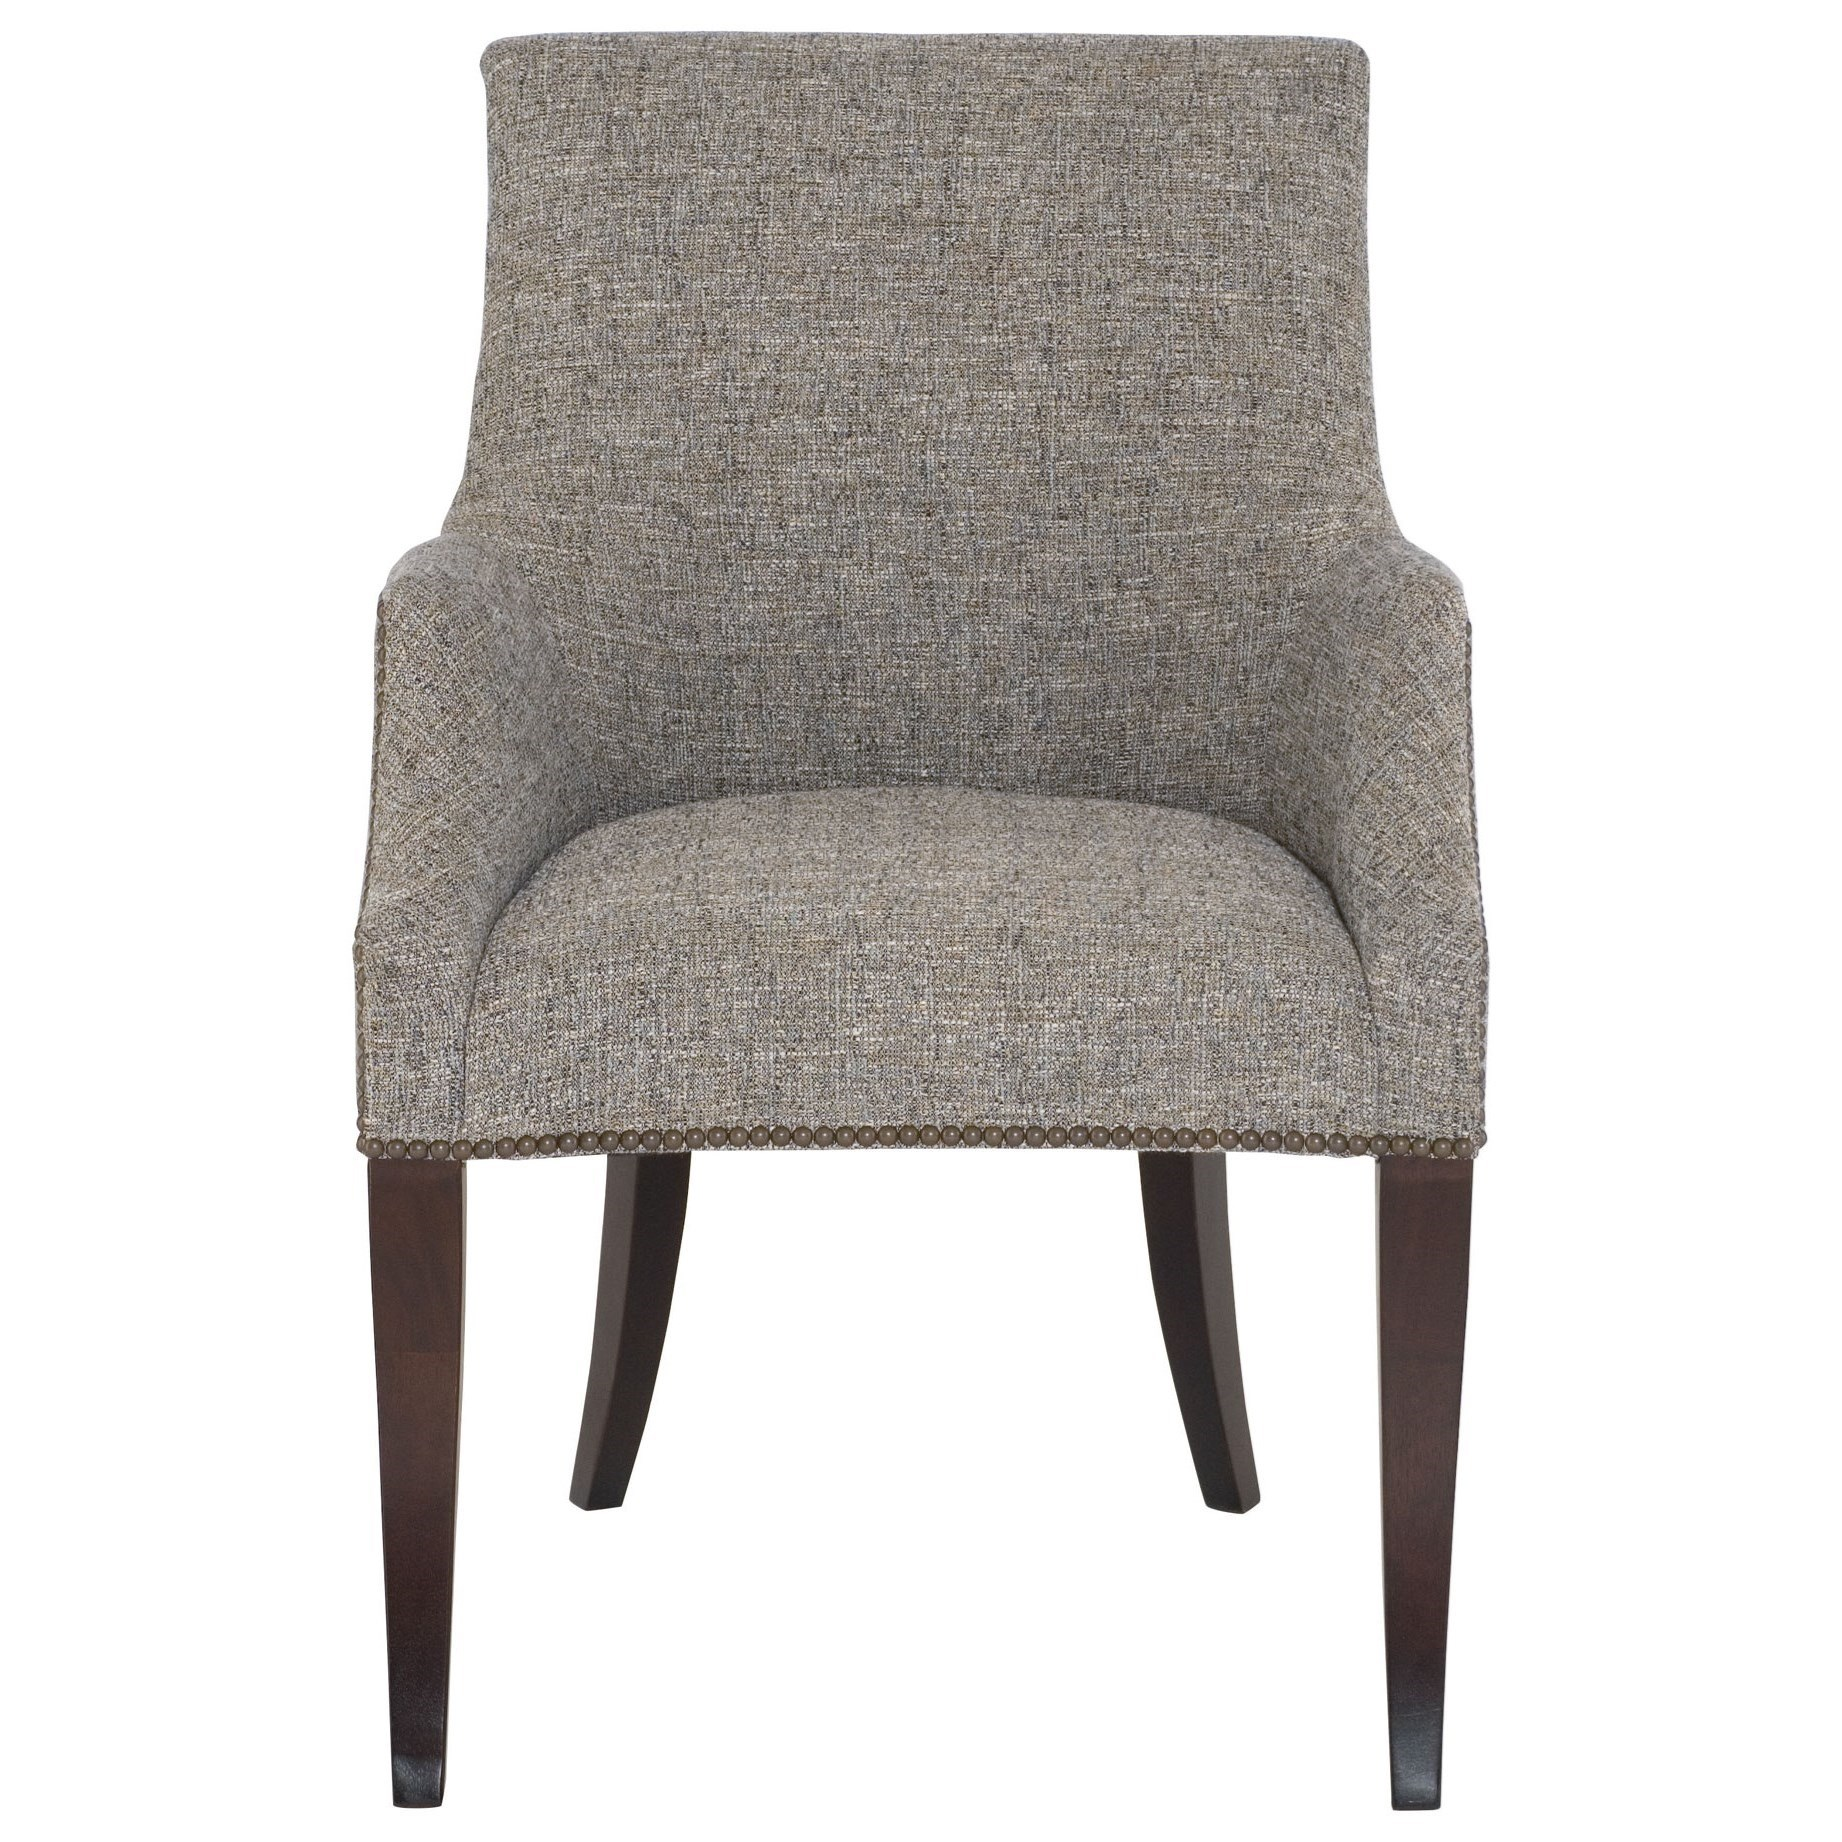 Bernhardt Keeley Upholstered Dining Arm Chair With Nail